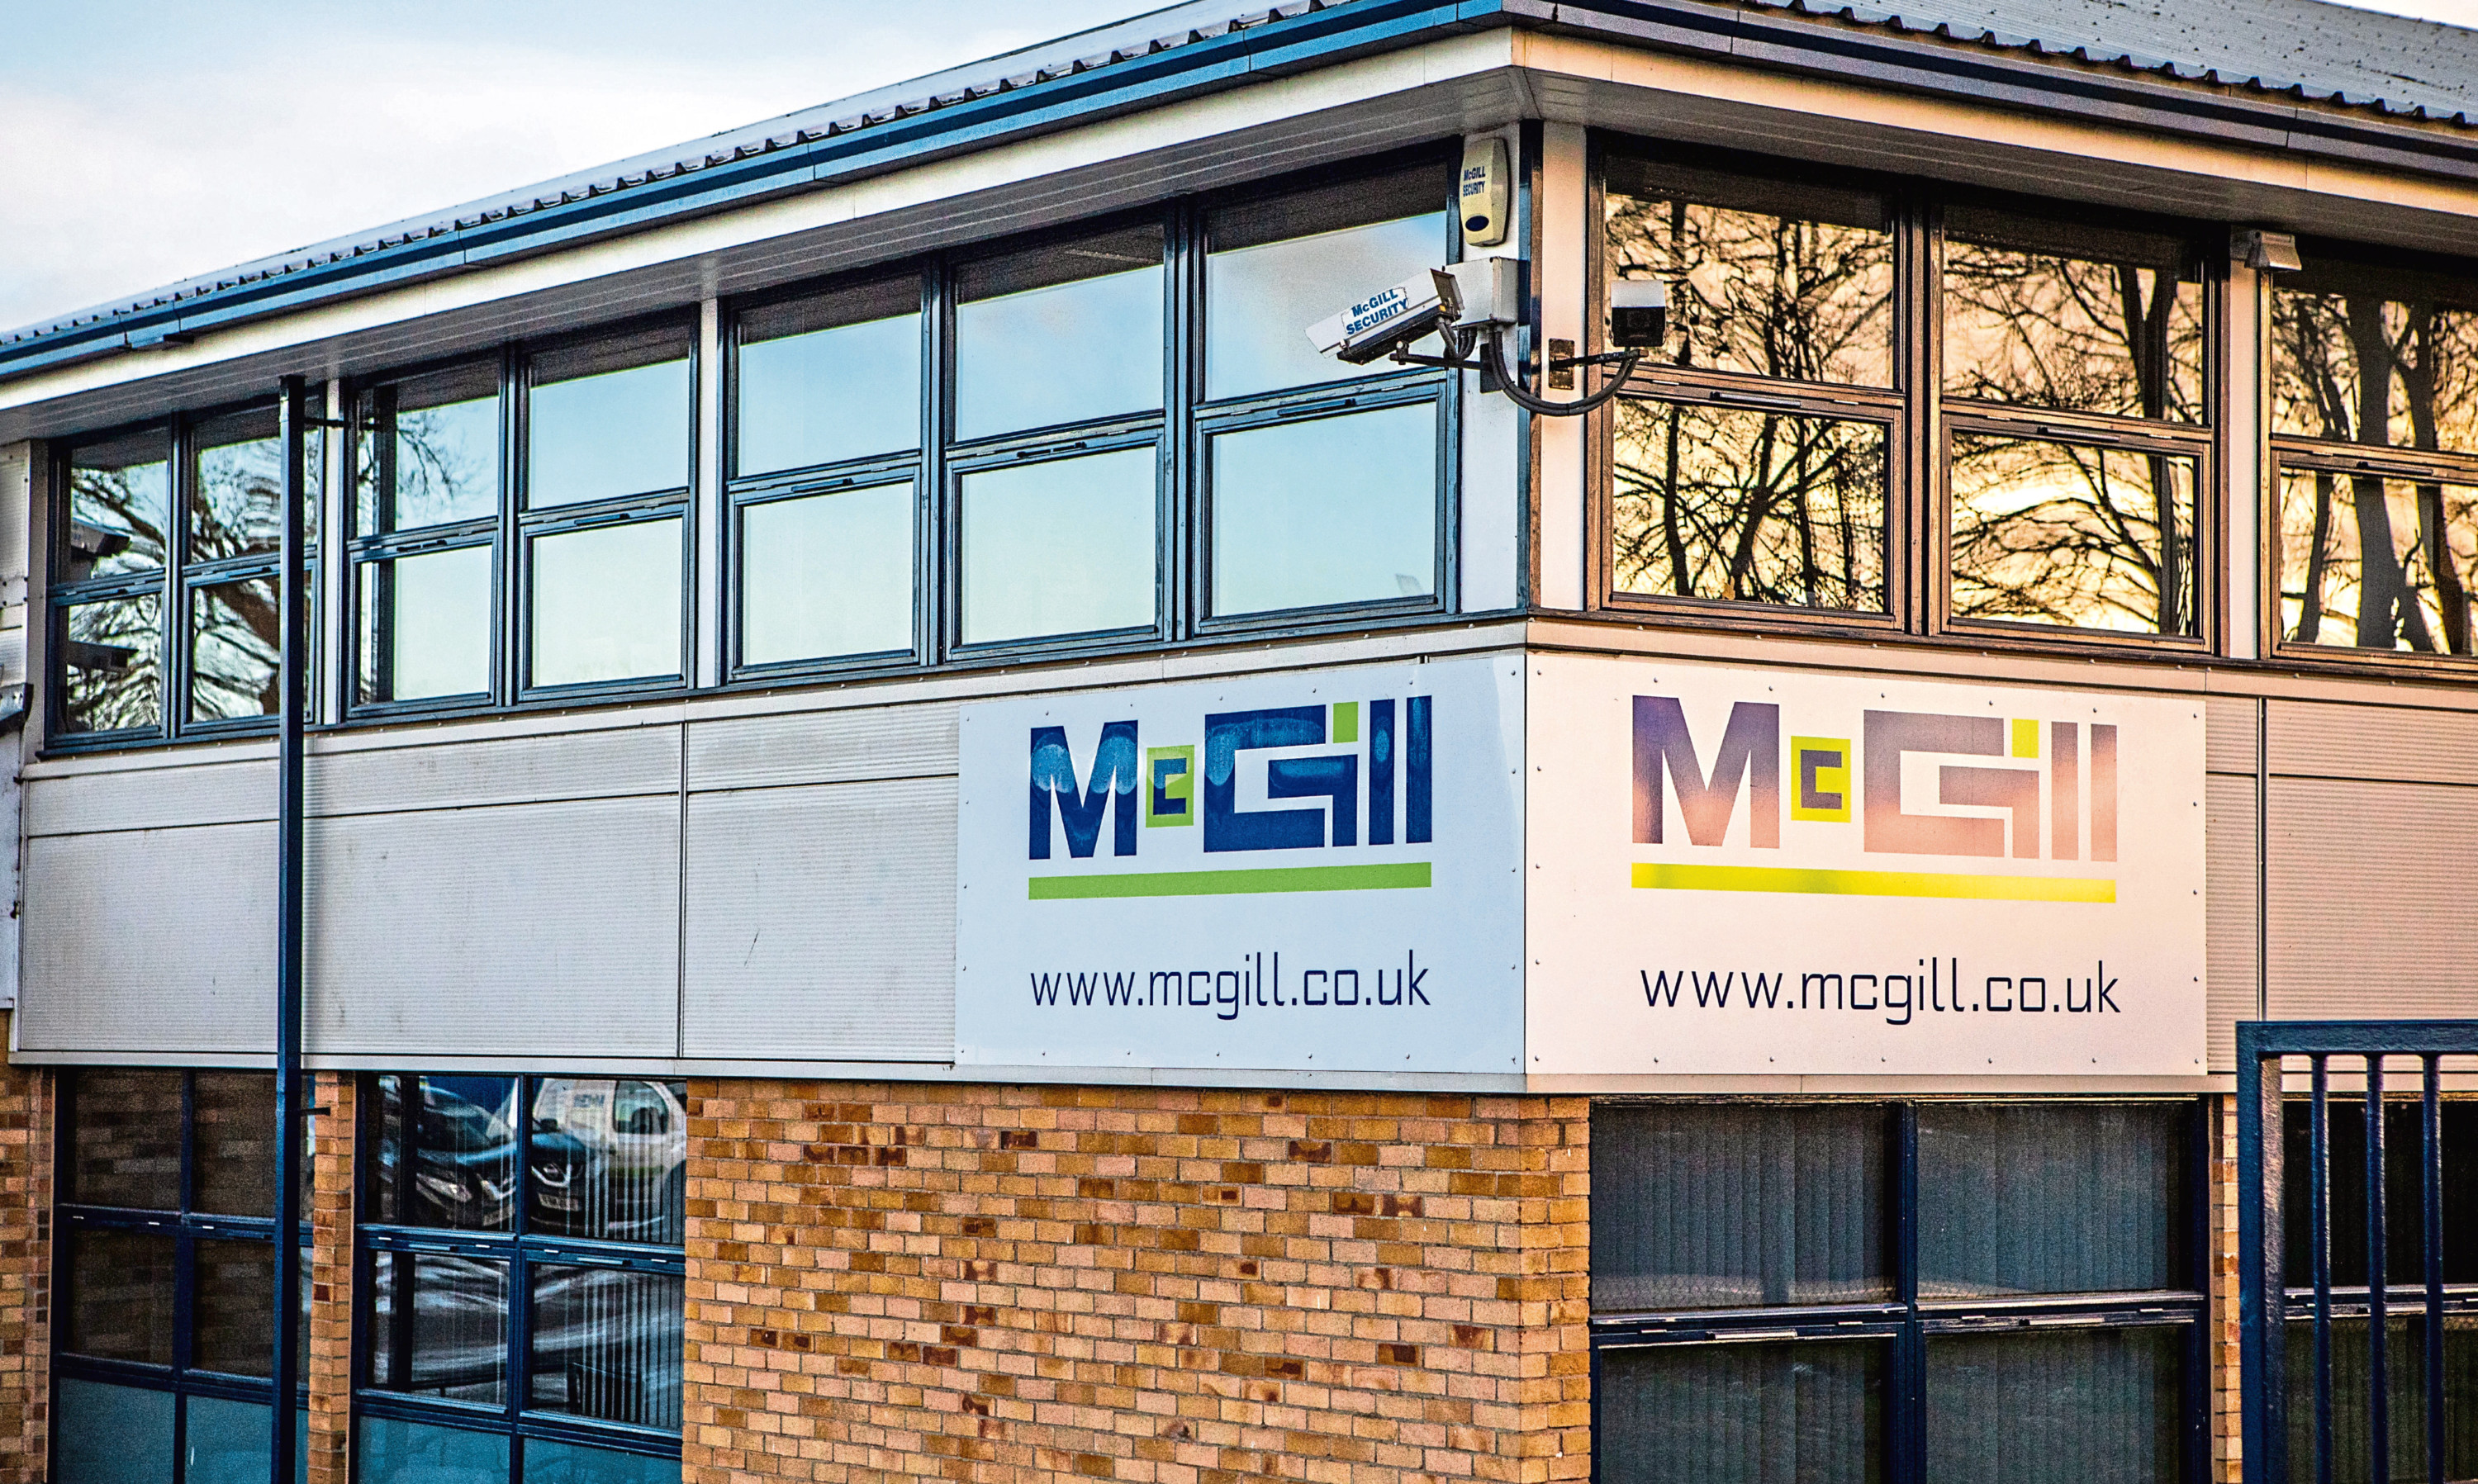 McGill premises in Harrison Road, Dundee.